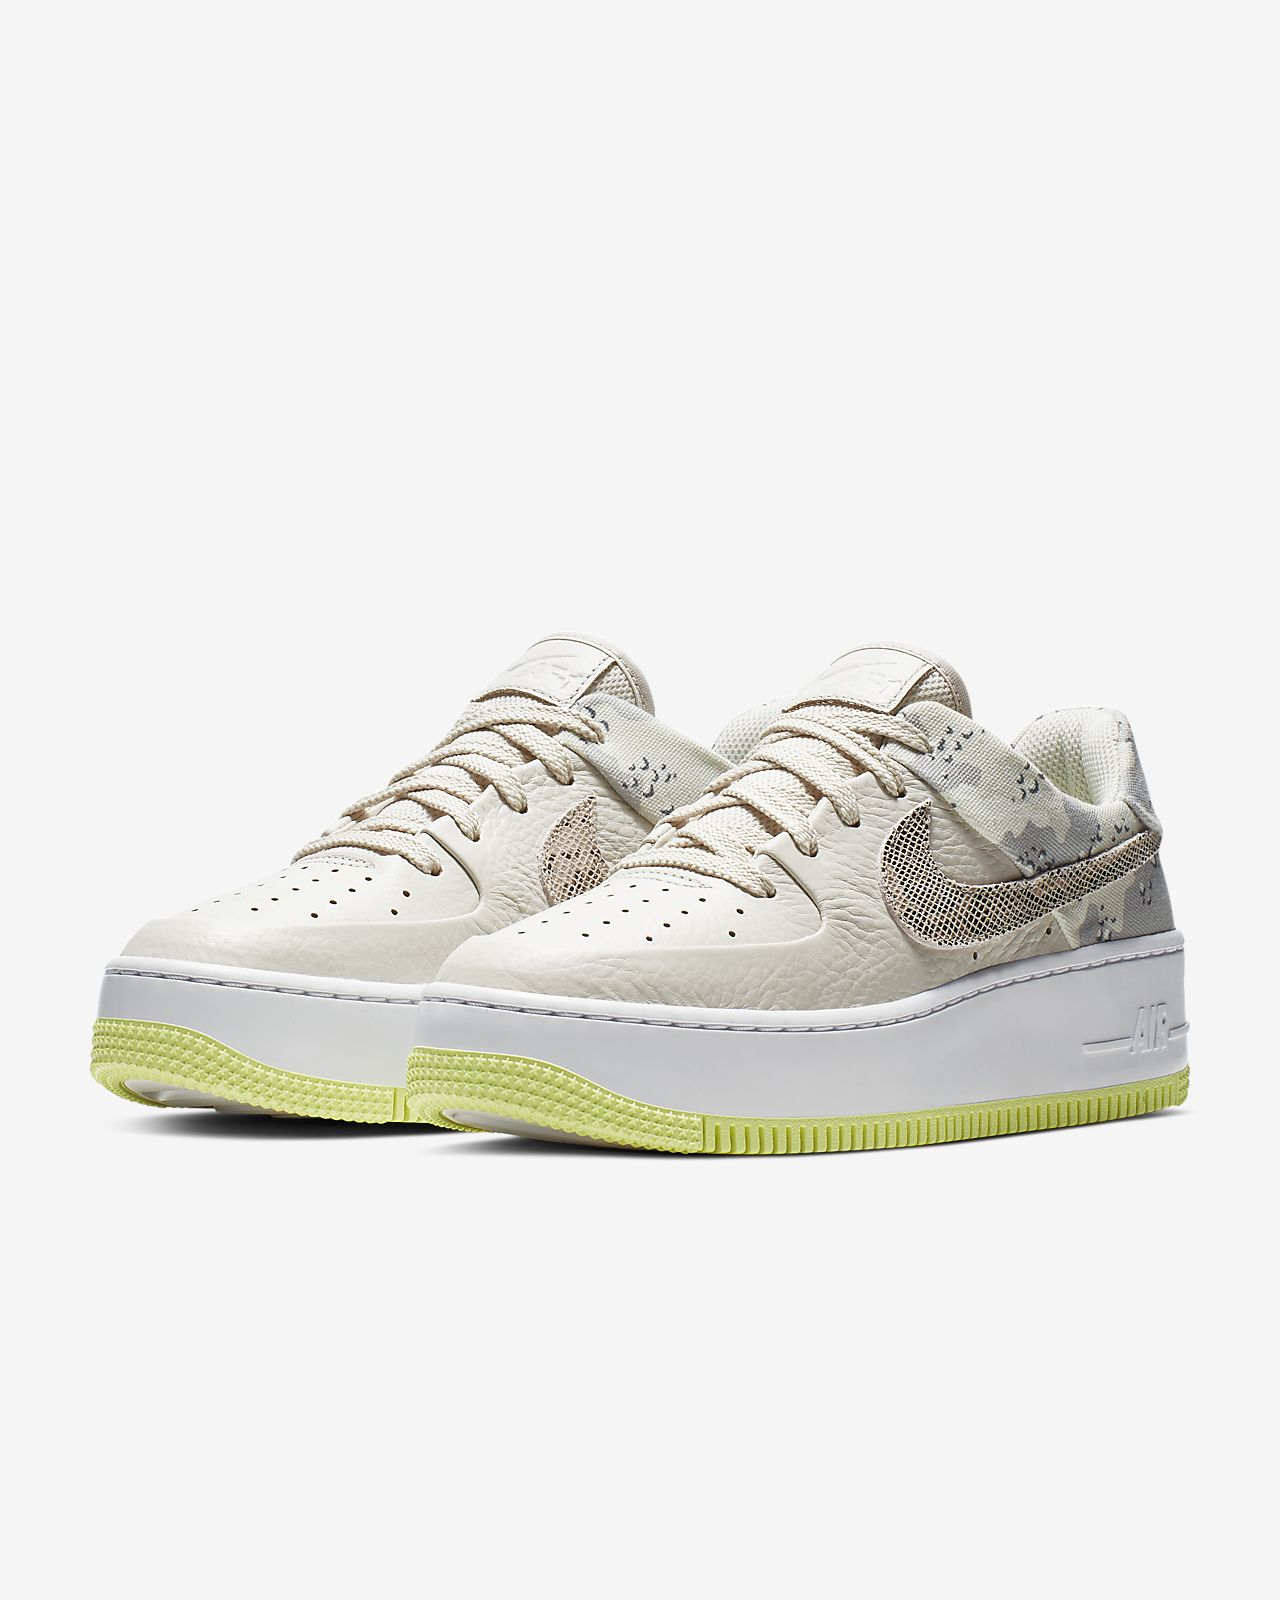 Nike Air Force 1 Sage Low Premium Camo Damesschoen